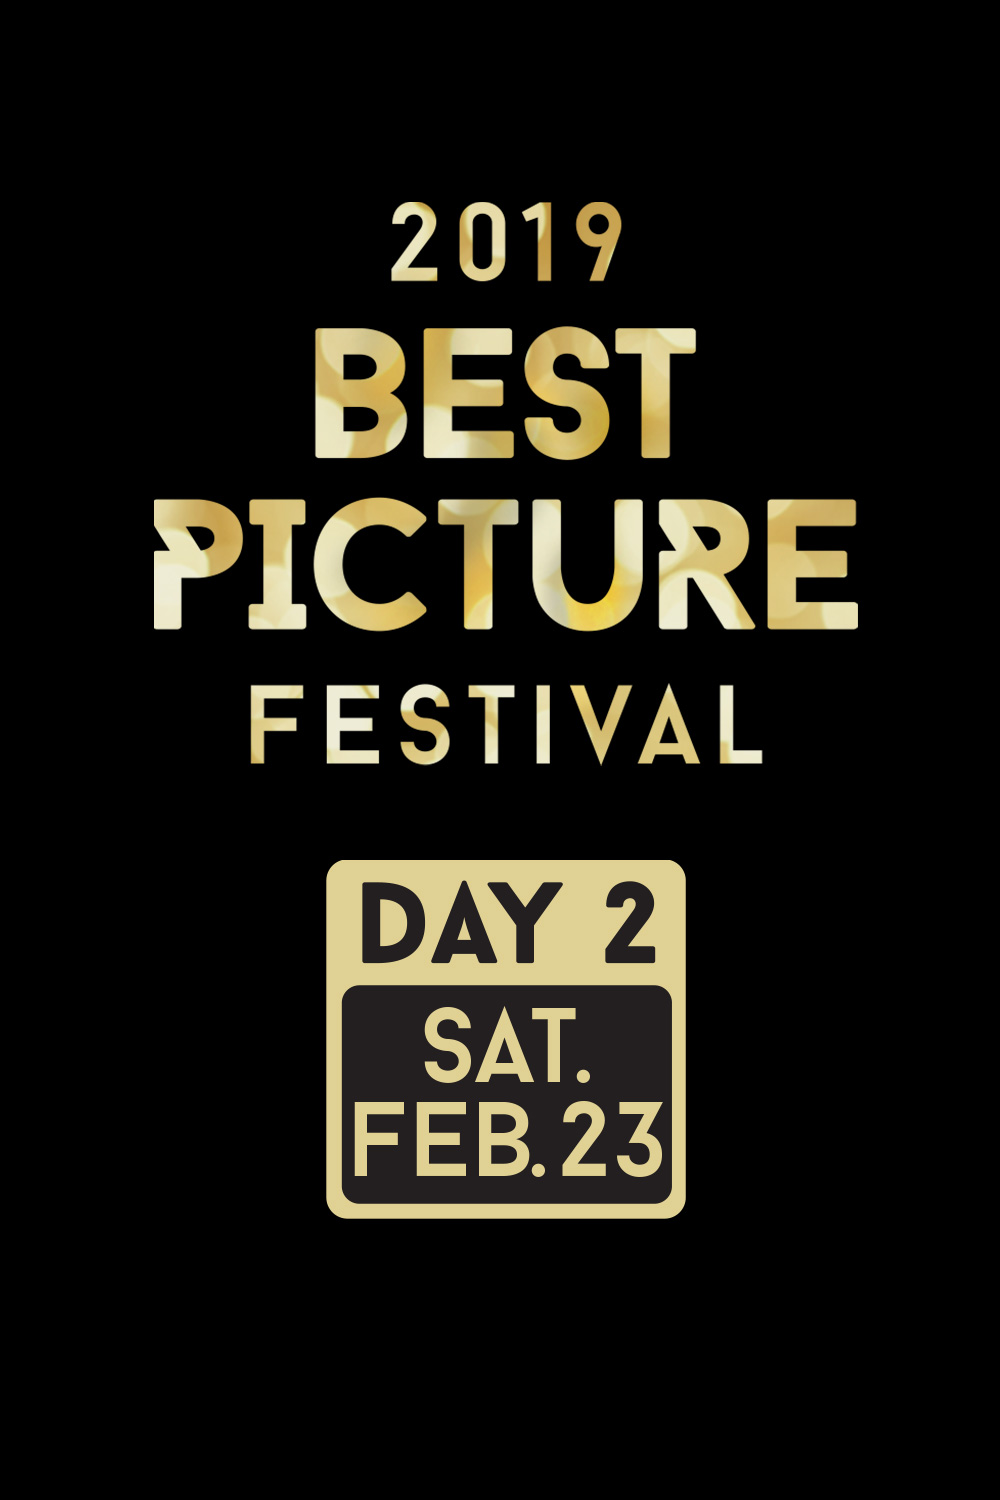 Best Picture Fest 2019: Day 2